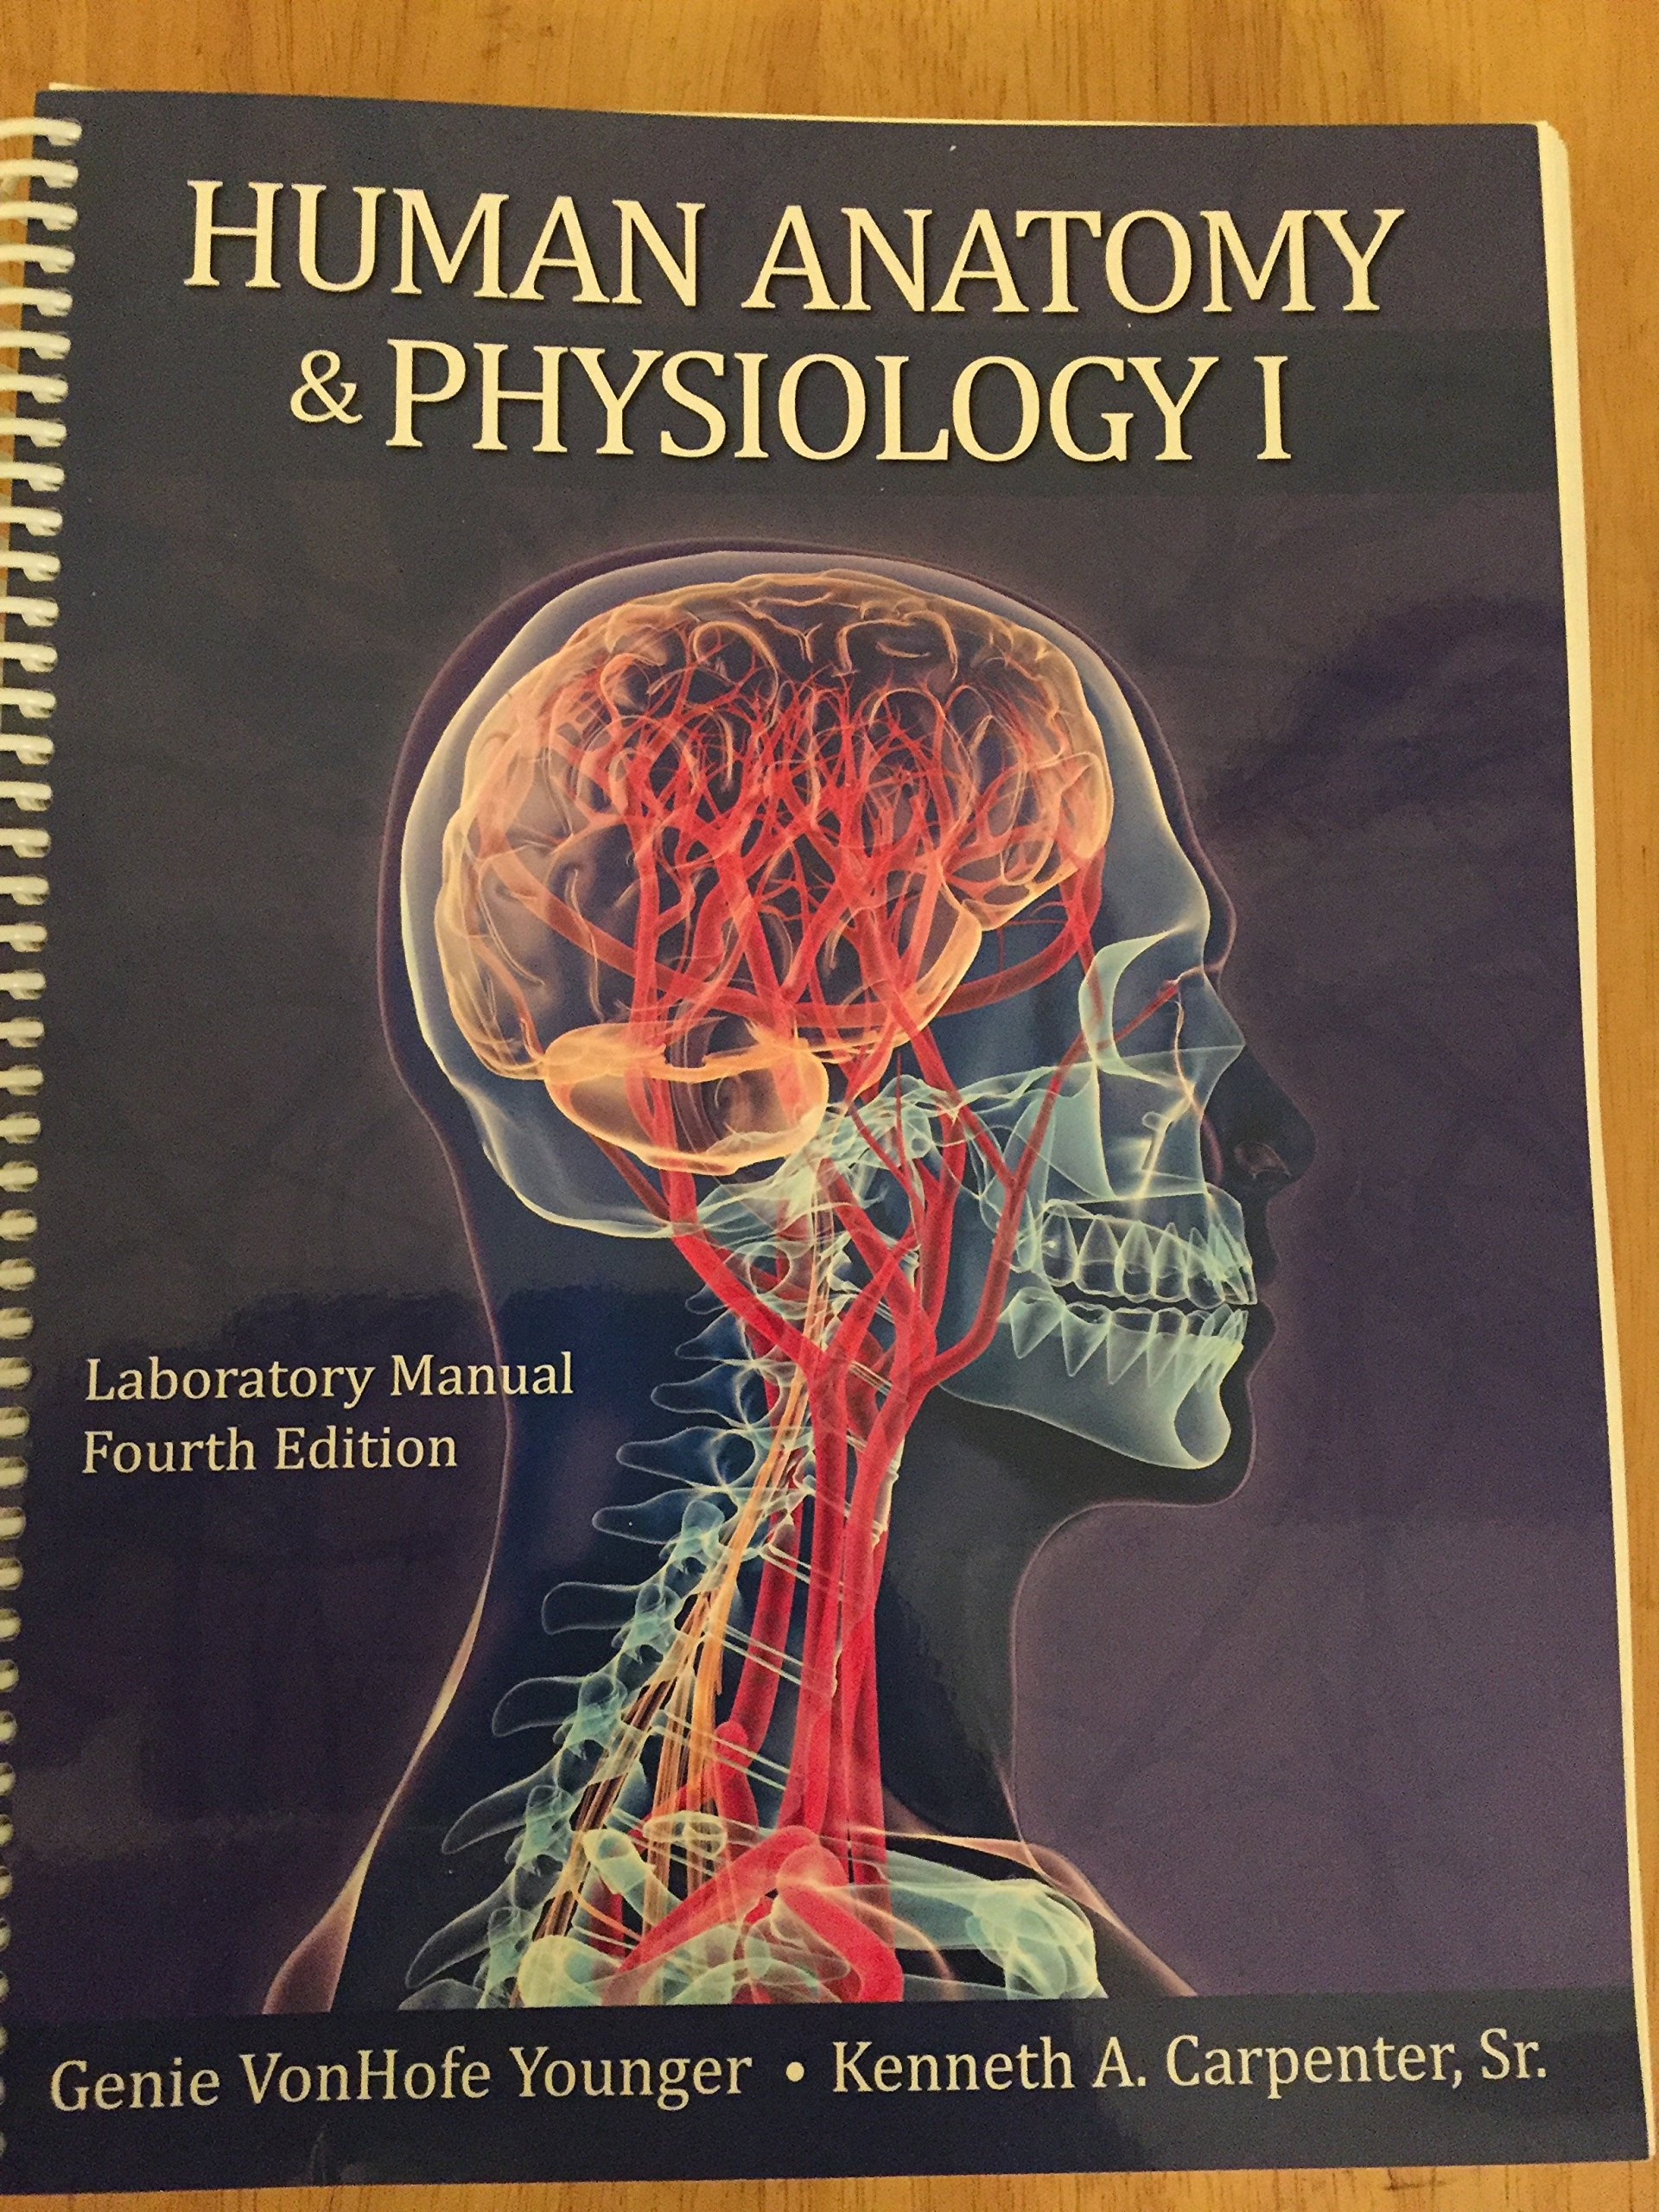 Human Anatomy & Physiology I Laboratory Manual: 9781599843865 ...